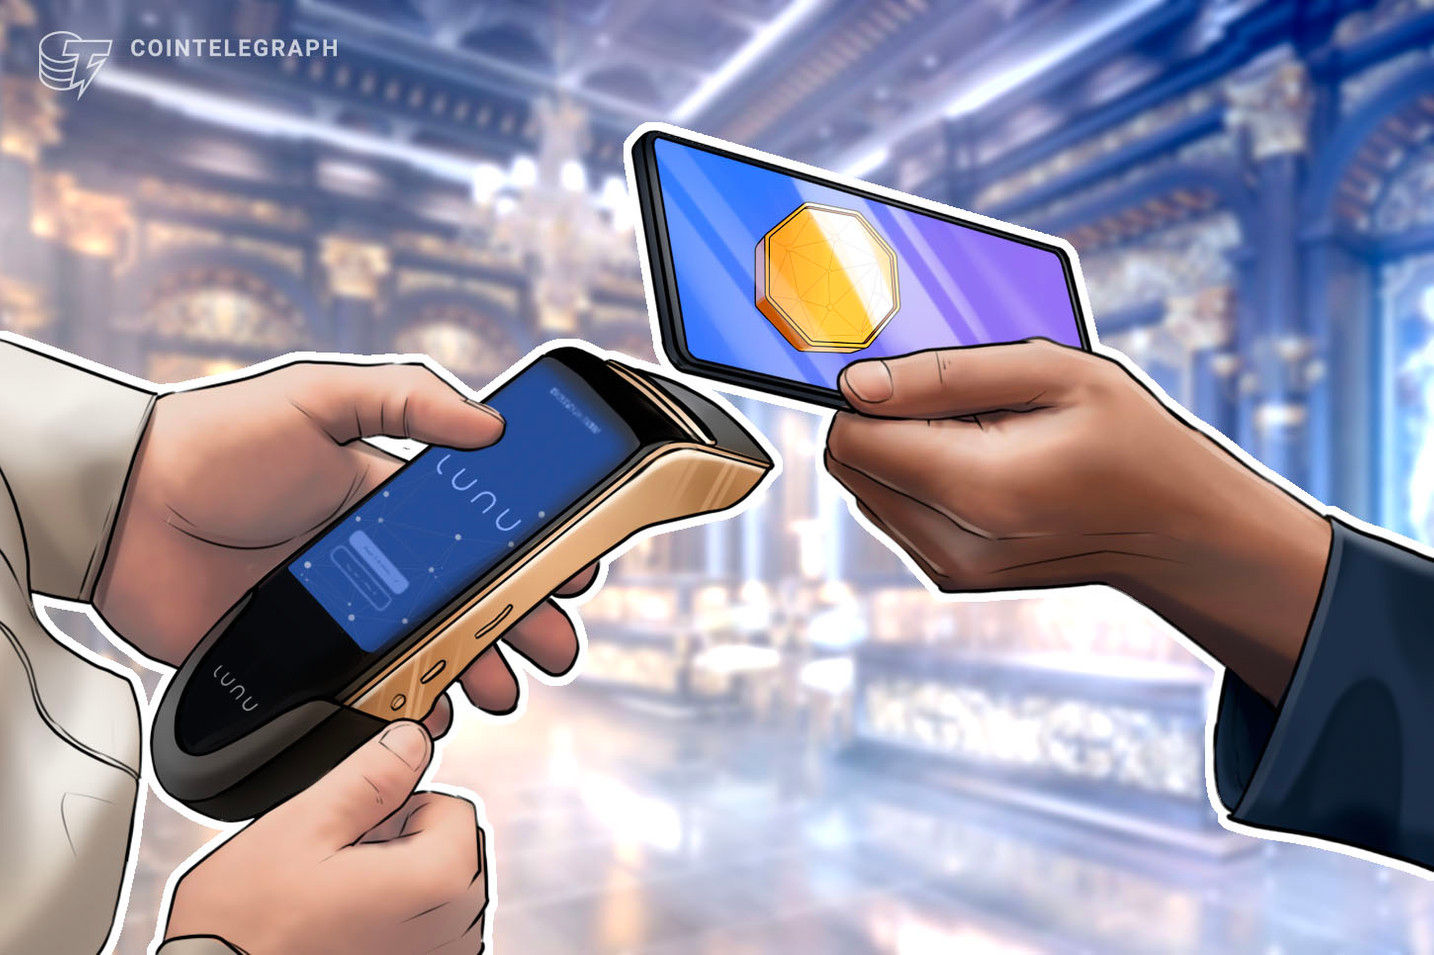 Fintech platform brings beauty and functionality to crypto payments